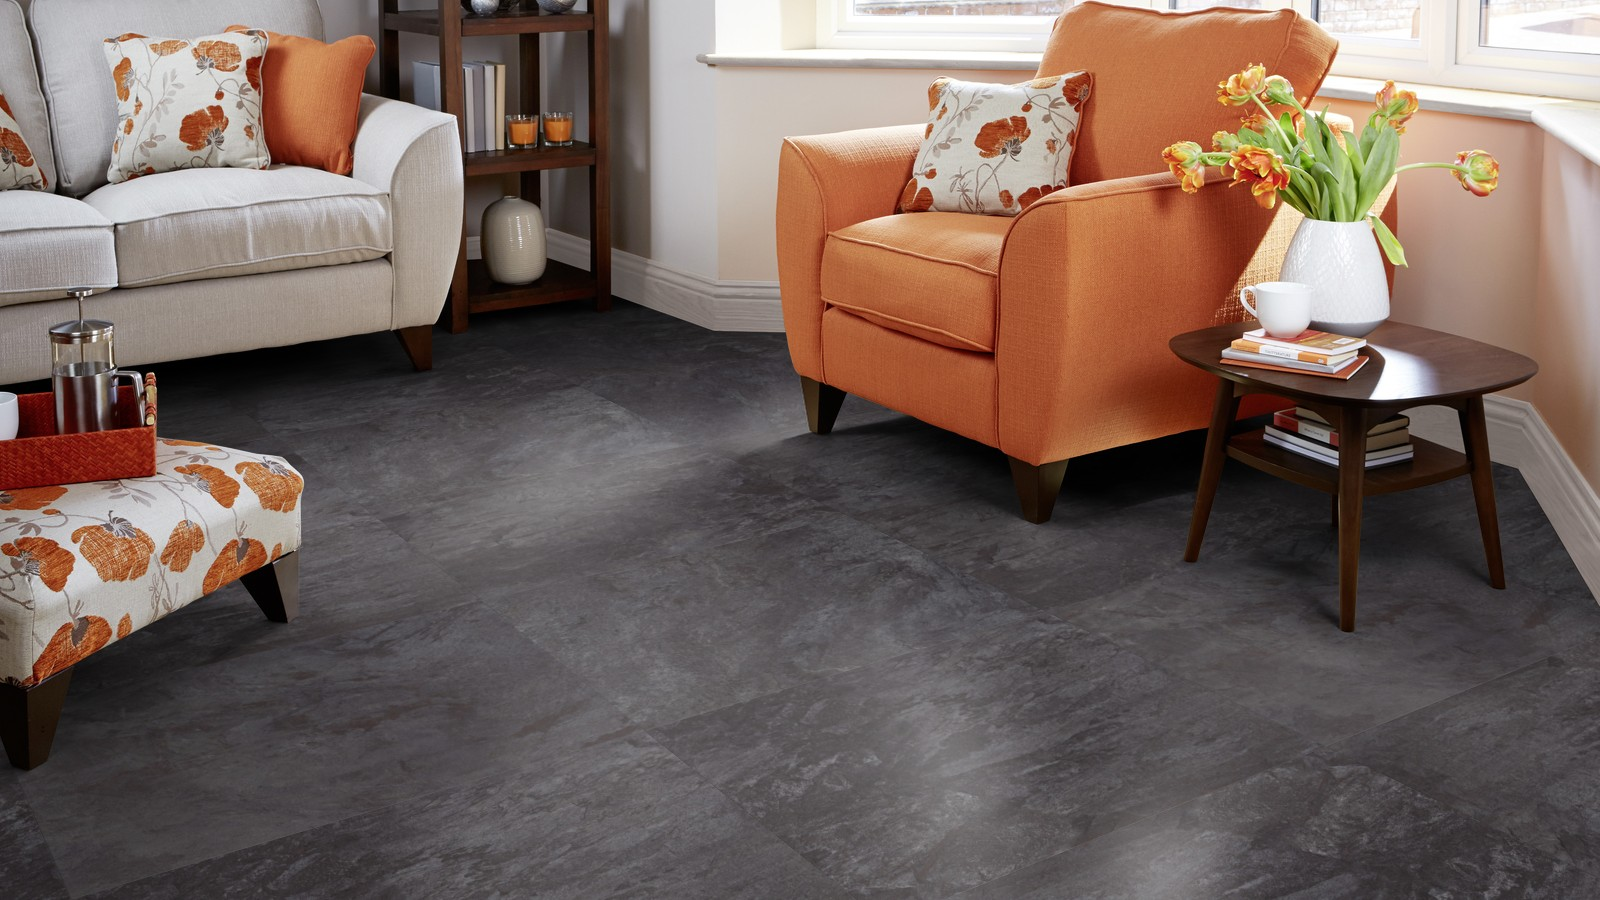 Designer Karndean in Cleveleys, an Excellent Flooring Choice